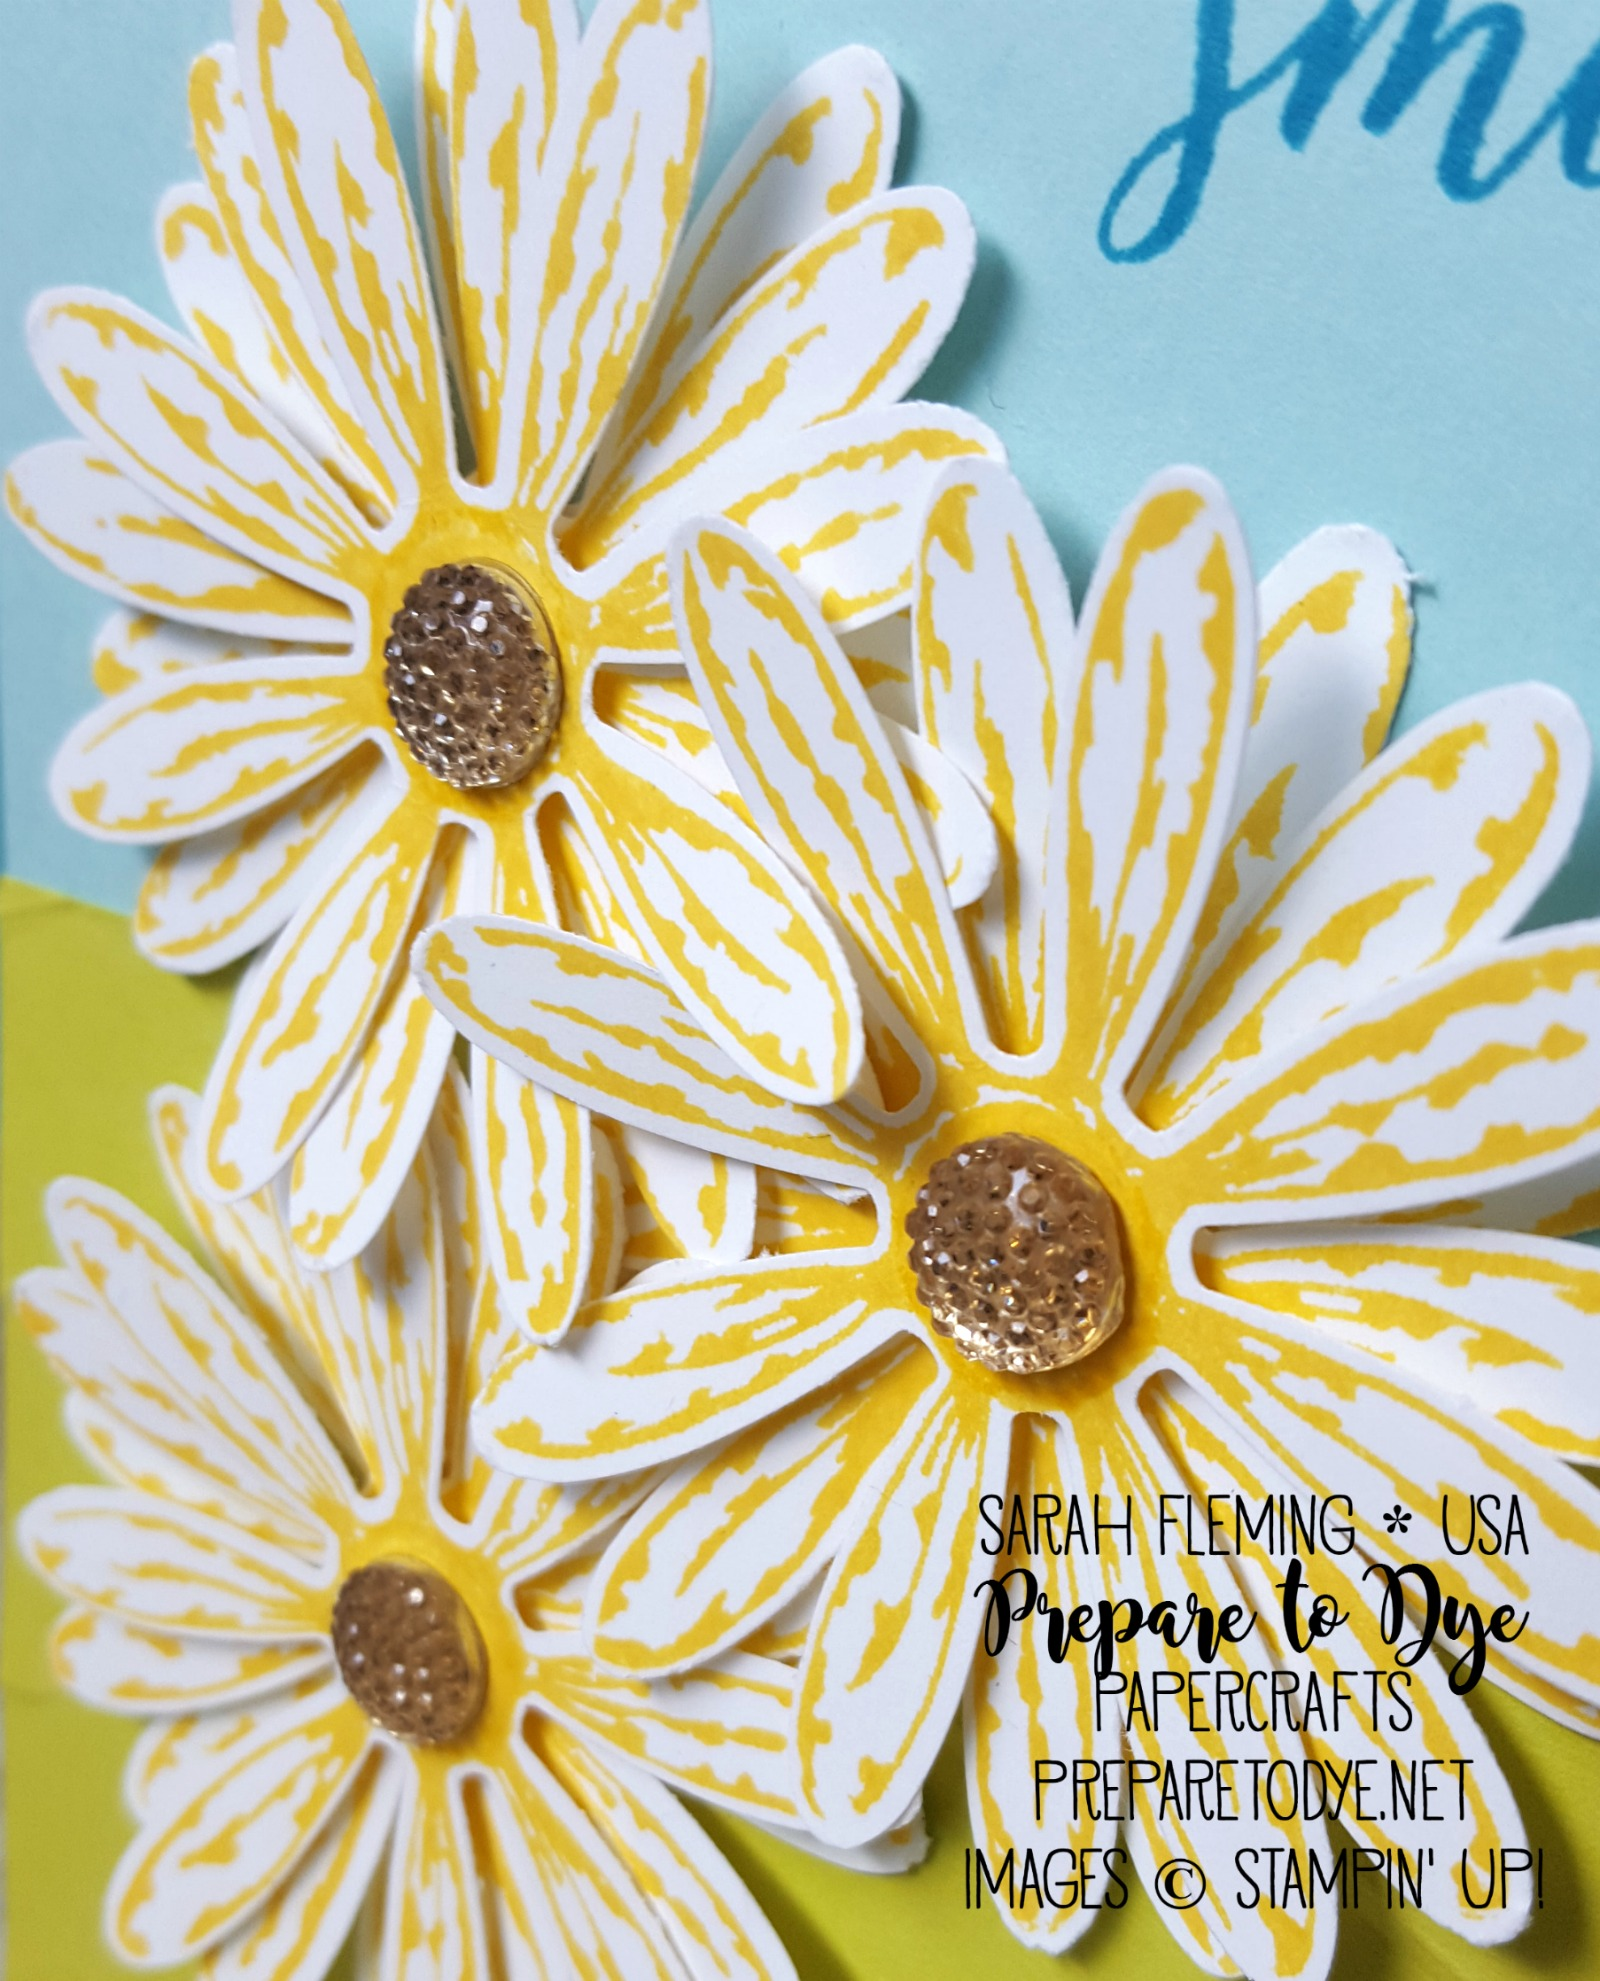 Stampin' Up! Daisy Delight bundle with Colorful Seasons and Ruffled dynamic embossing folder - Sarah Fleming - Prepare to Dye Papercrafts